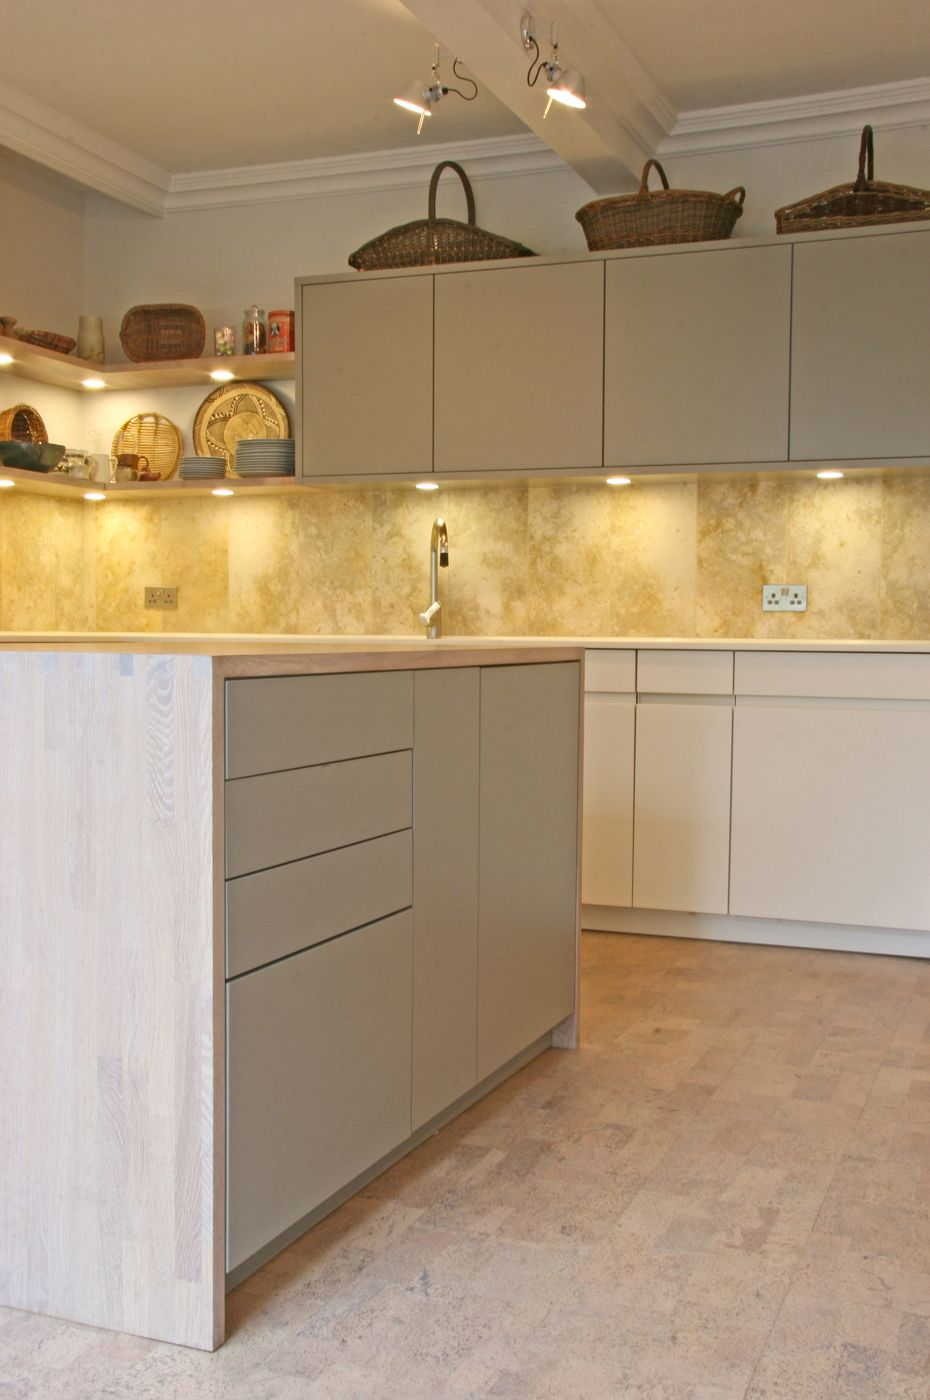 Medium image of kitchen cork flooring